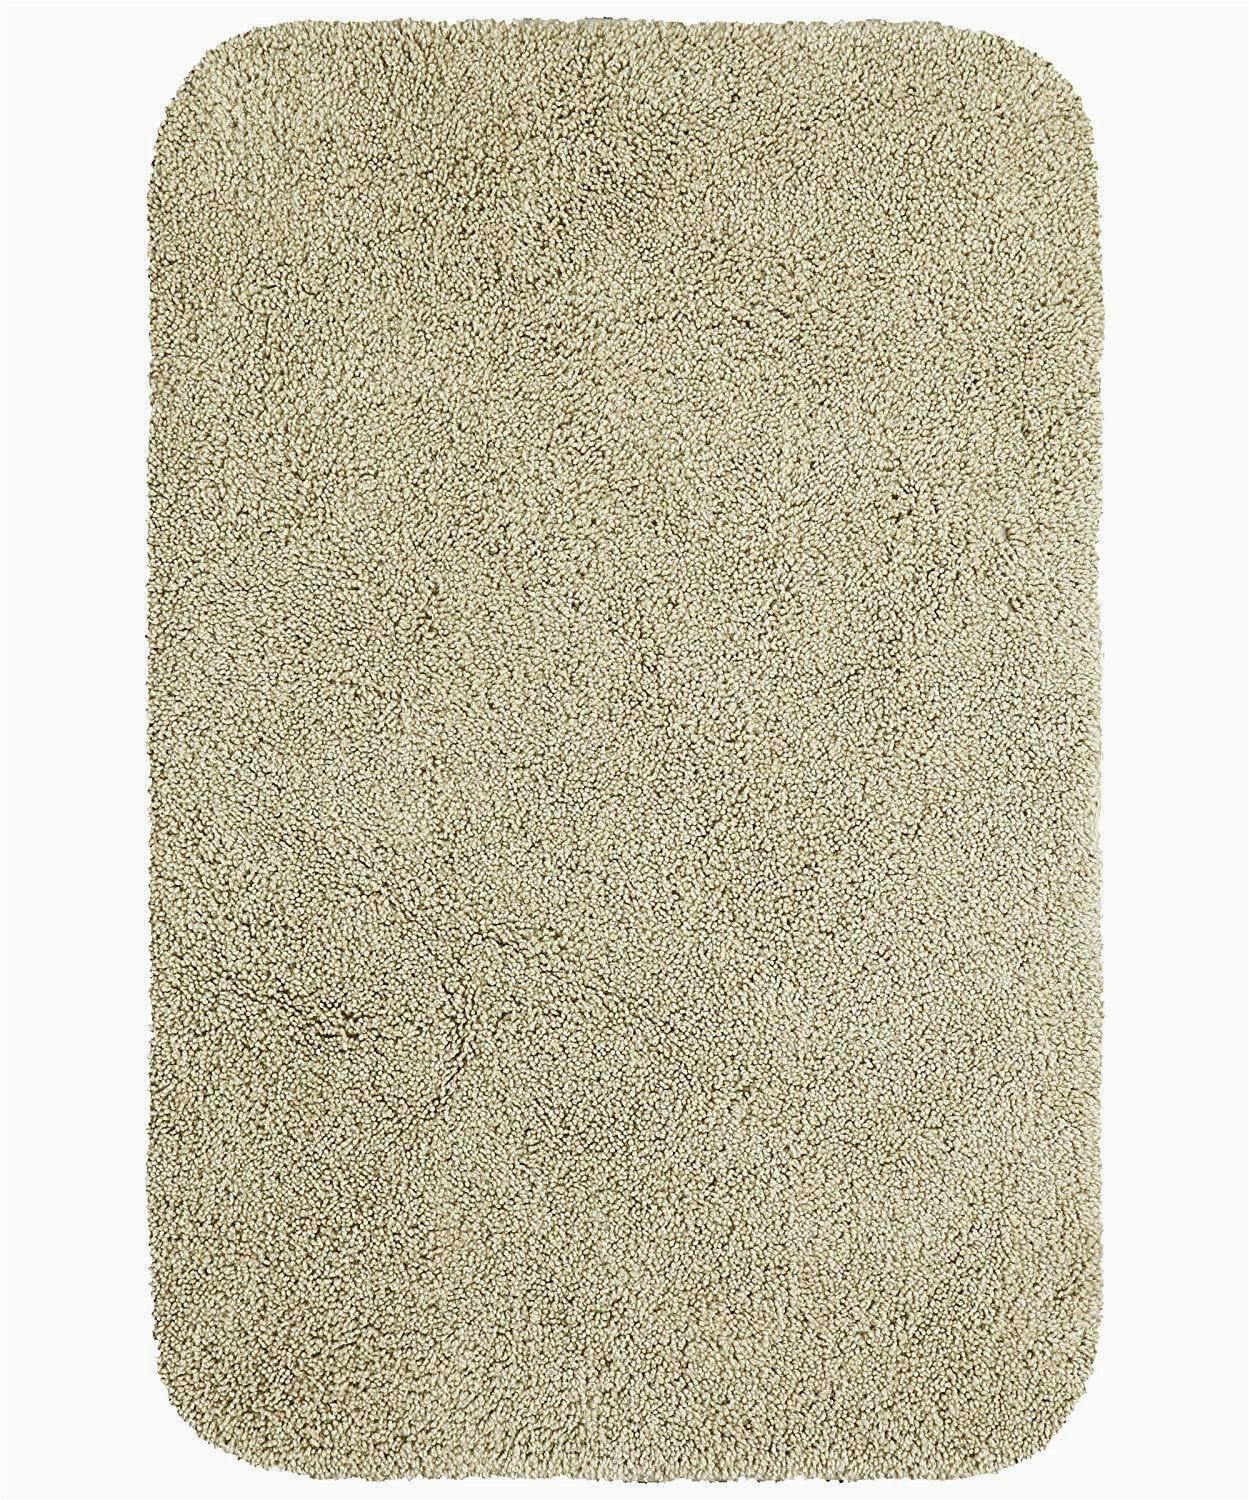 Kleine Wolke Bath Rugs Maples Rugs toilet Lid Cover softec soft Washable Elongated Seat Rug [made In